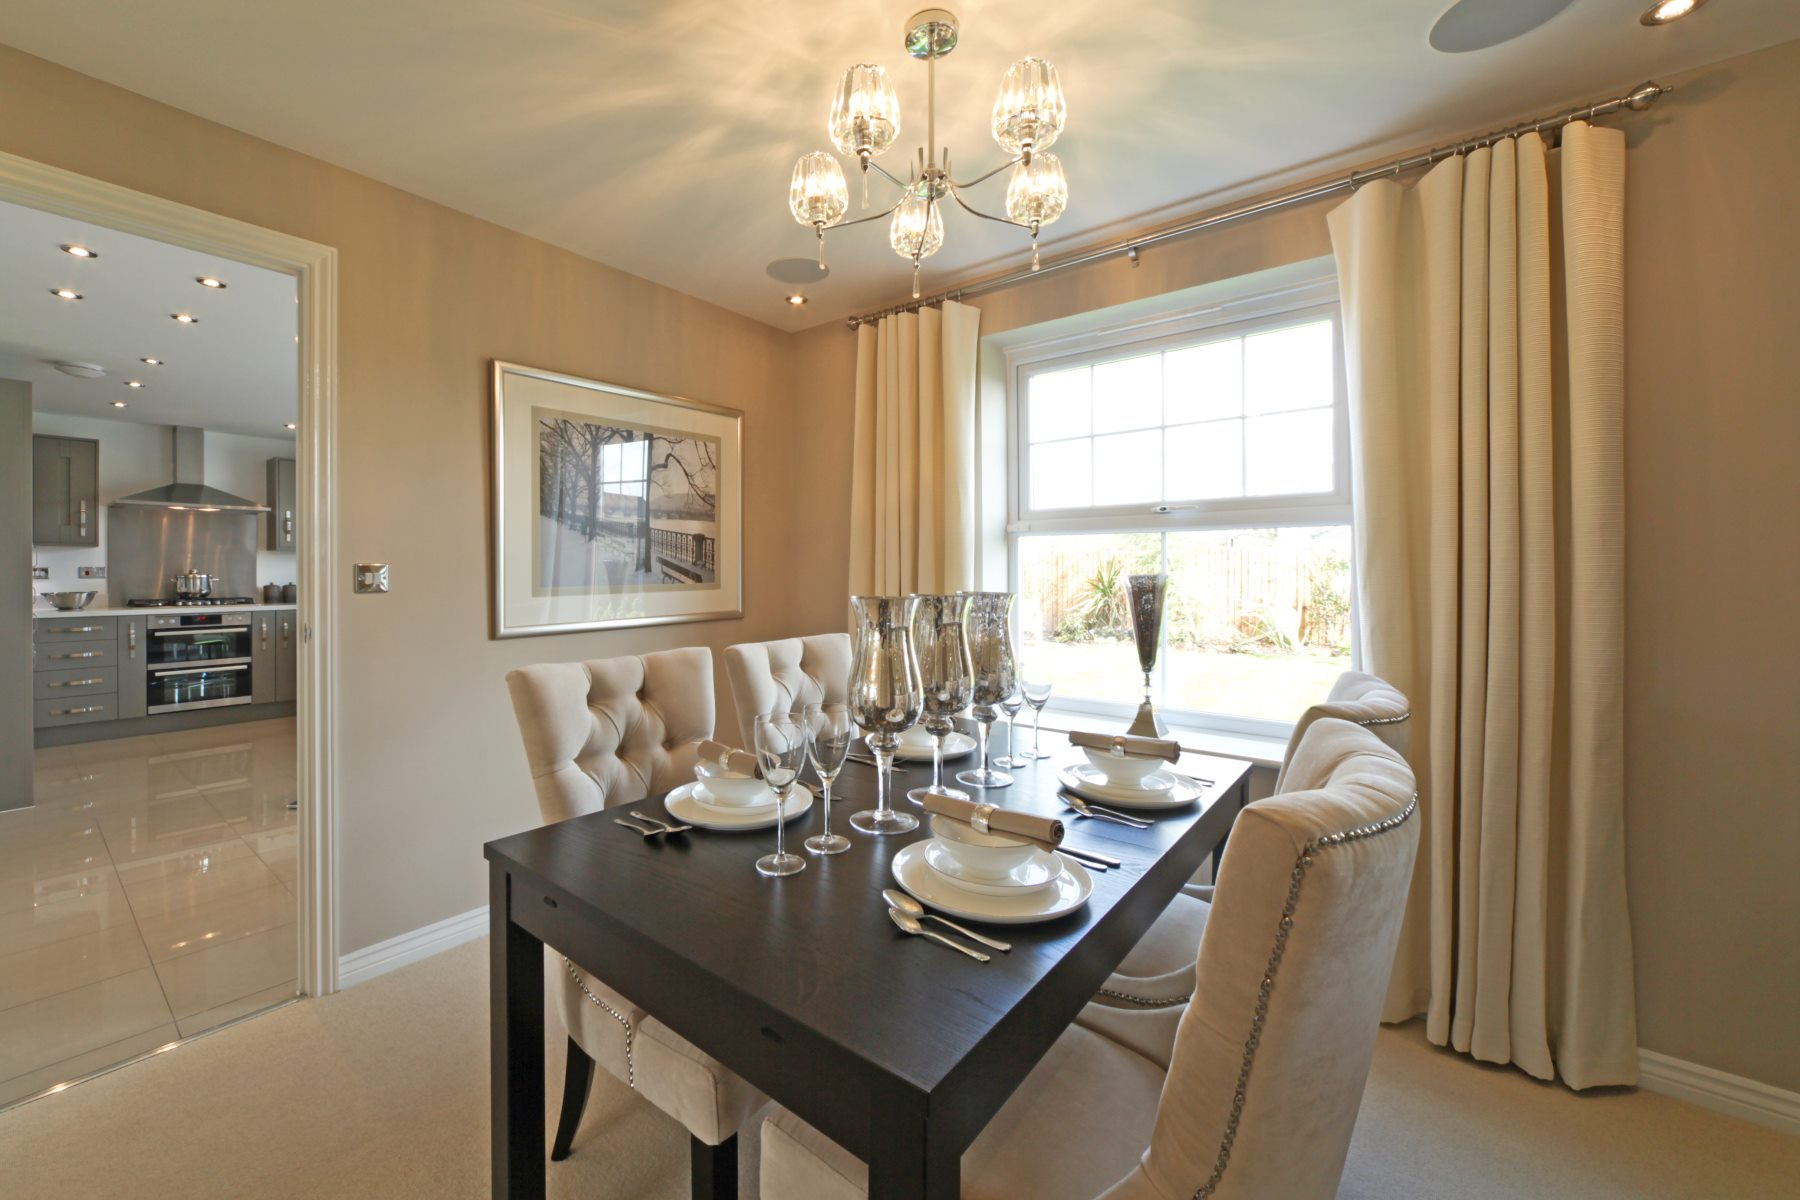 Eynsham Showhome Dining Room